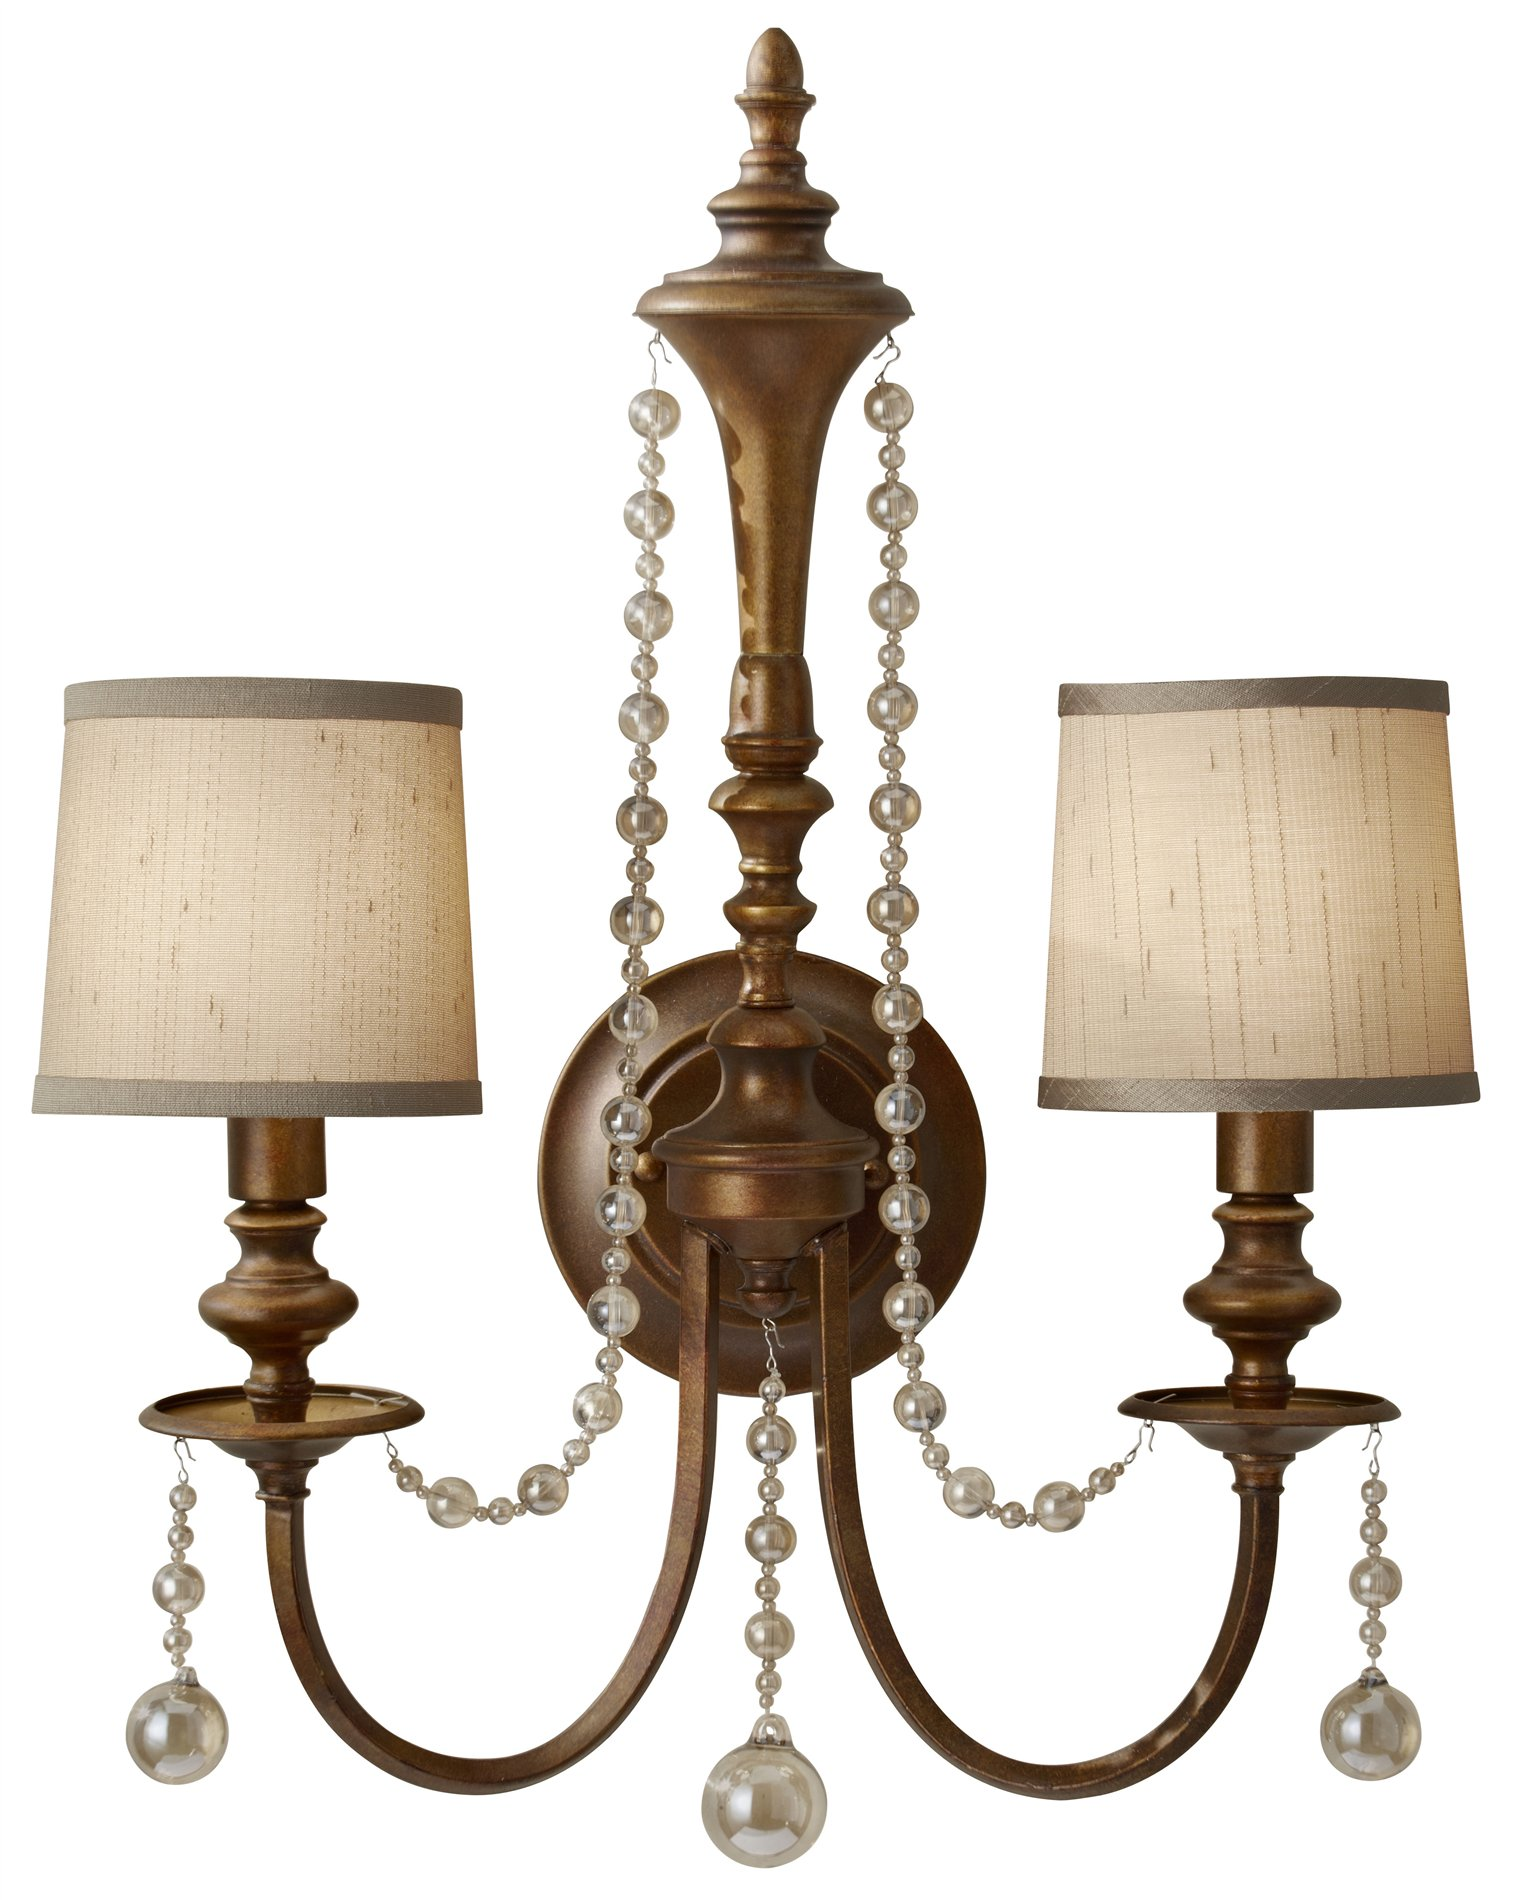 Murray Feiss Wall Sconces: Murray Feiss WB1582FG Clarissa Traditional Wall Sconce MRF